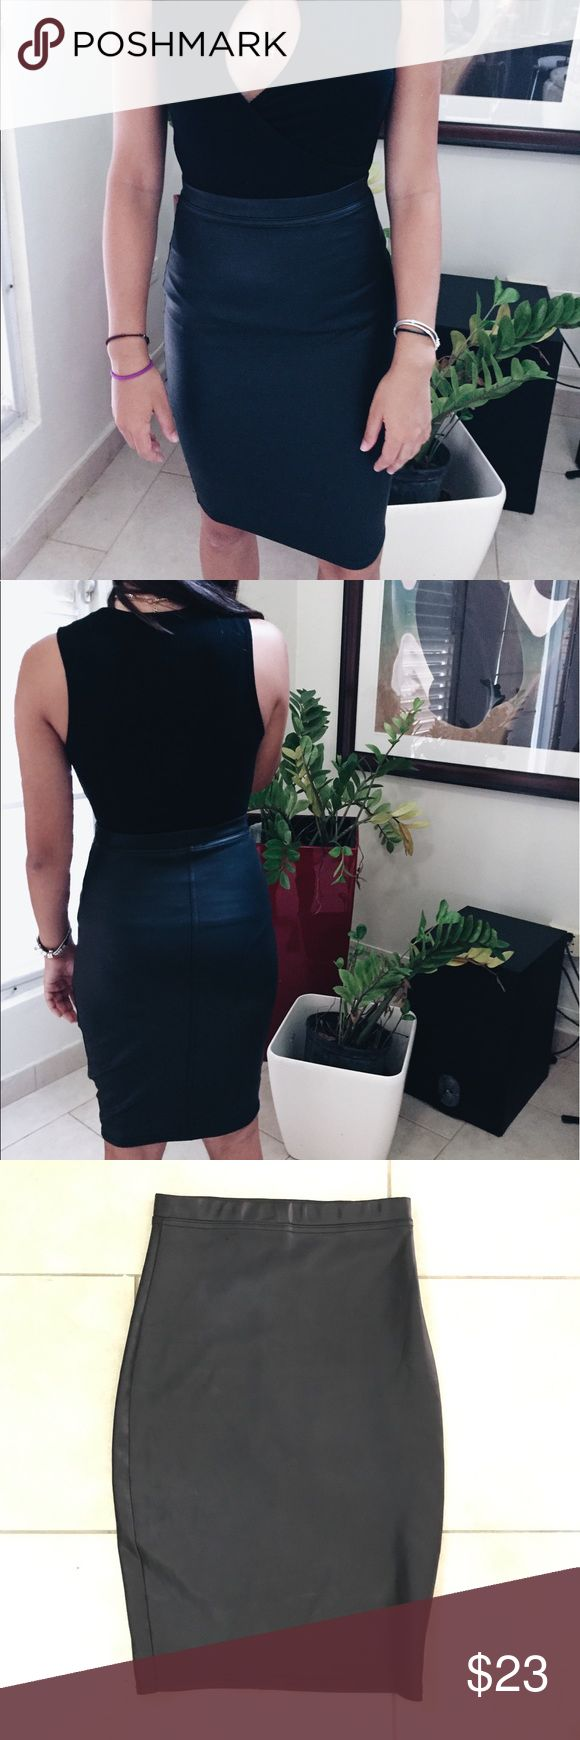 Bar III faux leather pencil skirt Used twice, excellent conditions! Leather look imitation. 95% polyester, 5% spandex. Bar III Skirts Pencil